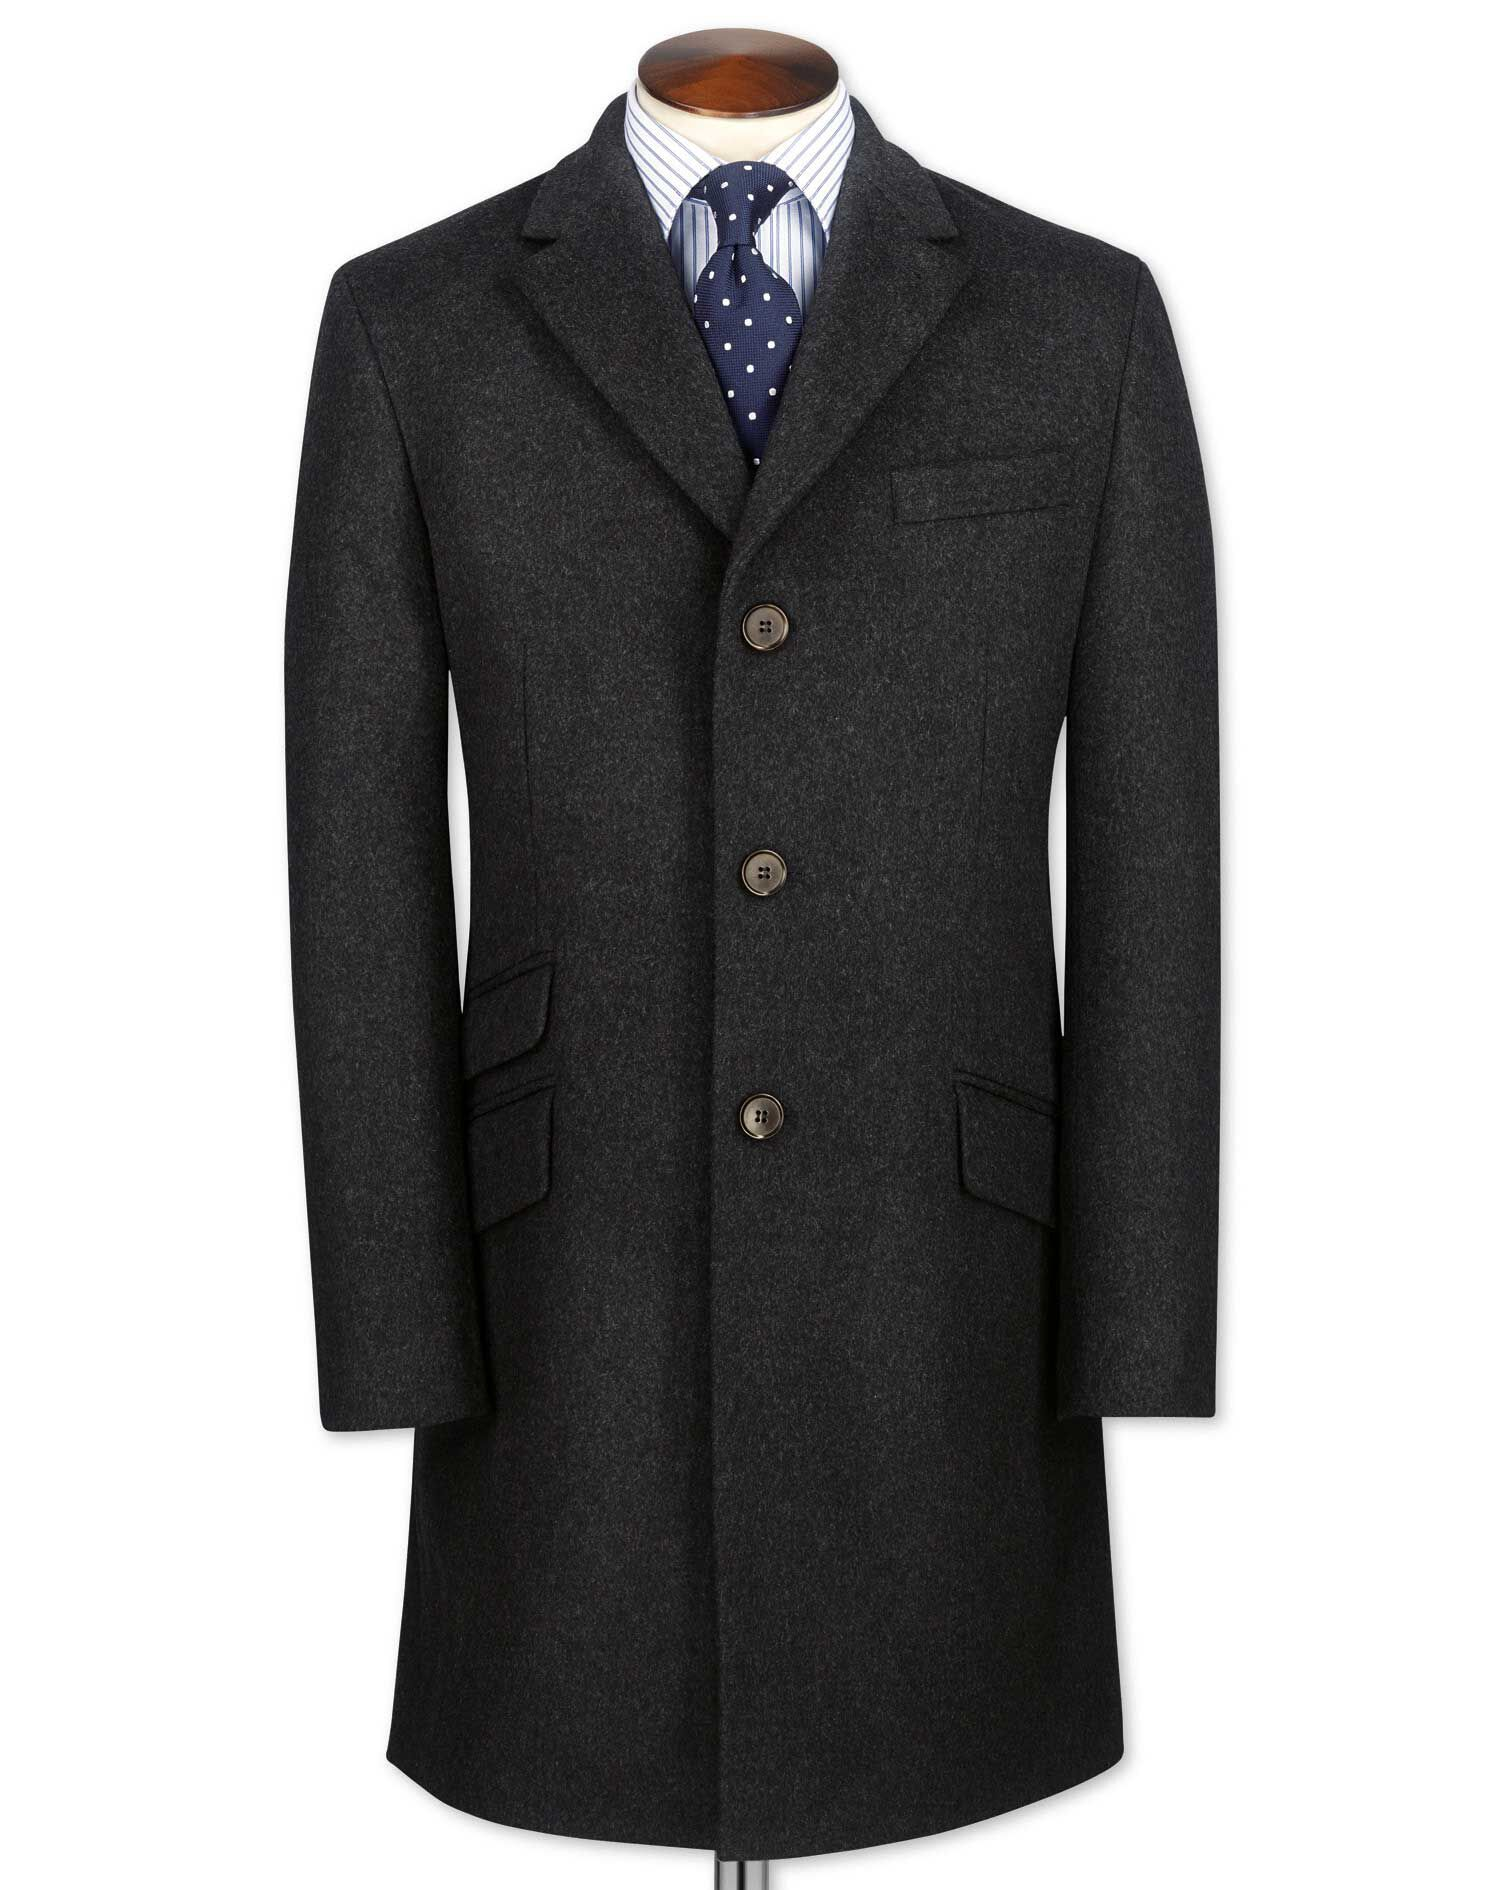 Charcoal Wool and Cashmere Epsom Overcoat Size 48 Regular by Charles Tyrwhitt